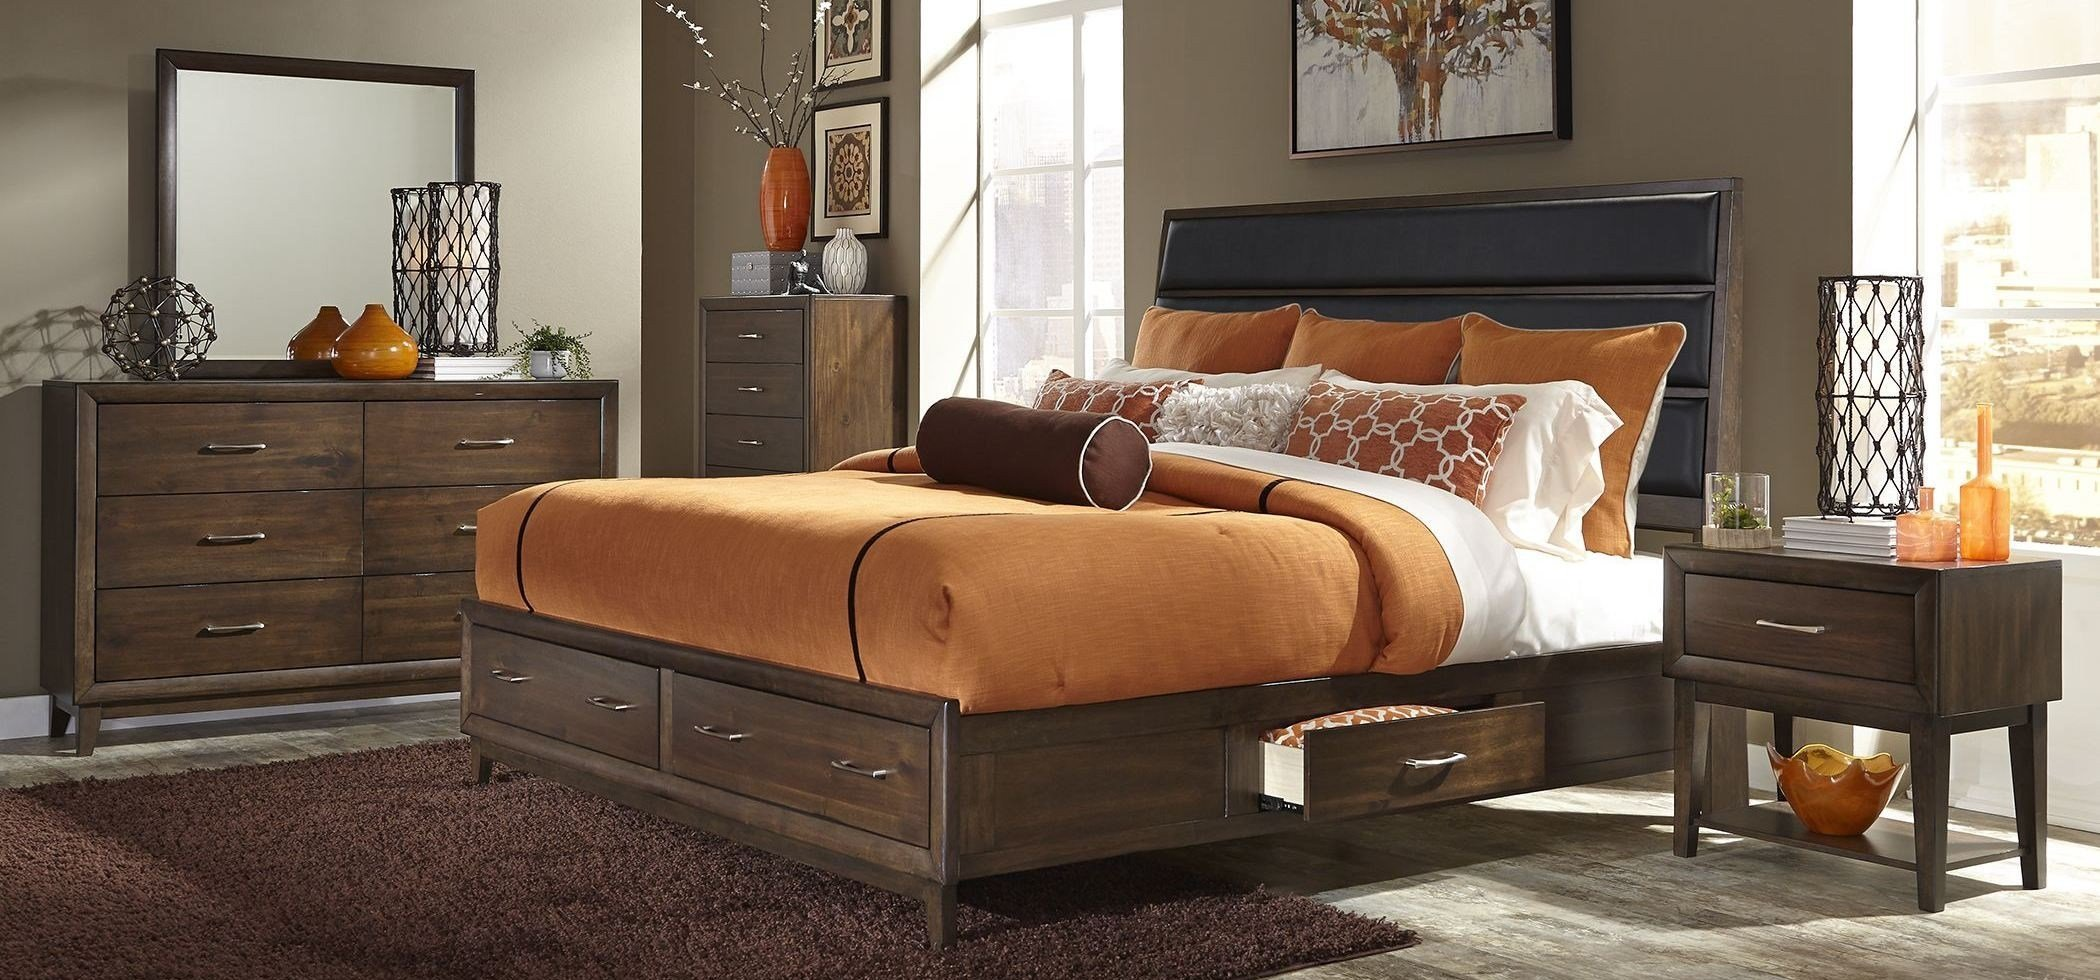 Best Hudson Square Espresso Upholstered Storage Plaform Bedroom With Pictures